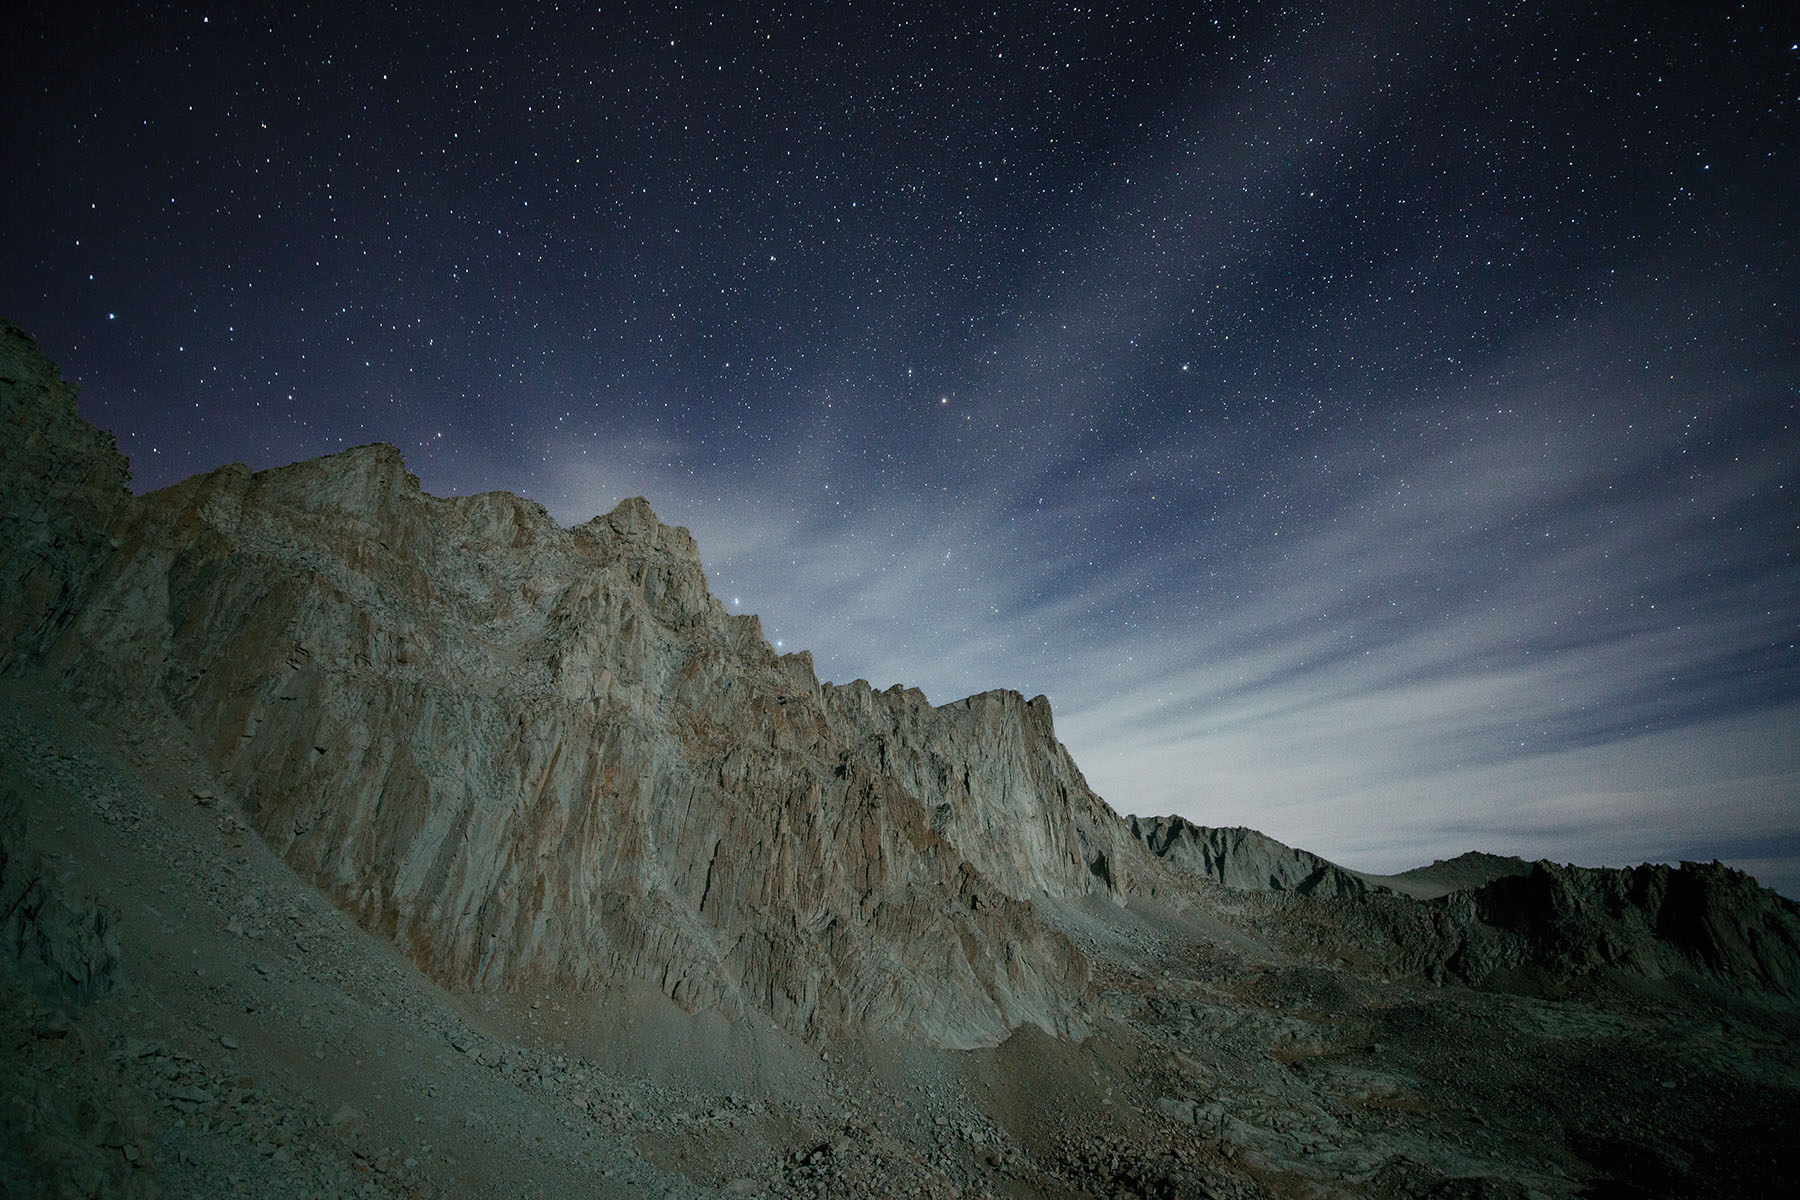 The mighty Mt. Whitney under the nighttime sky